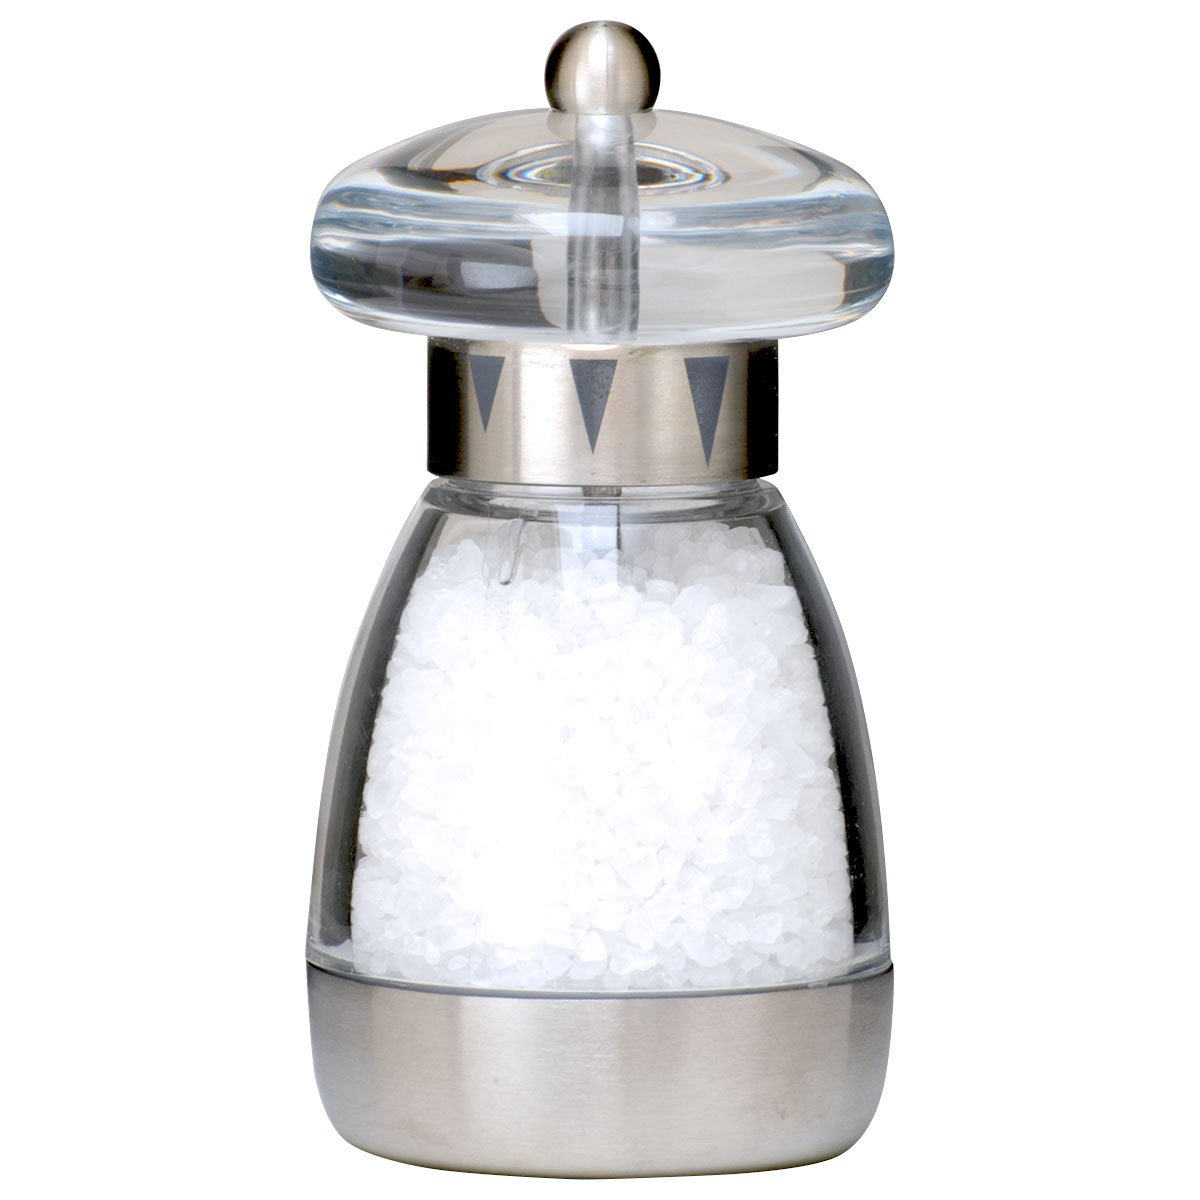 William Bounds 5.75-inch Mushroom Satin Salt Mill 04120